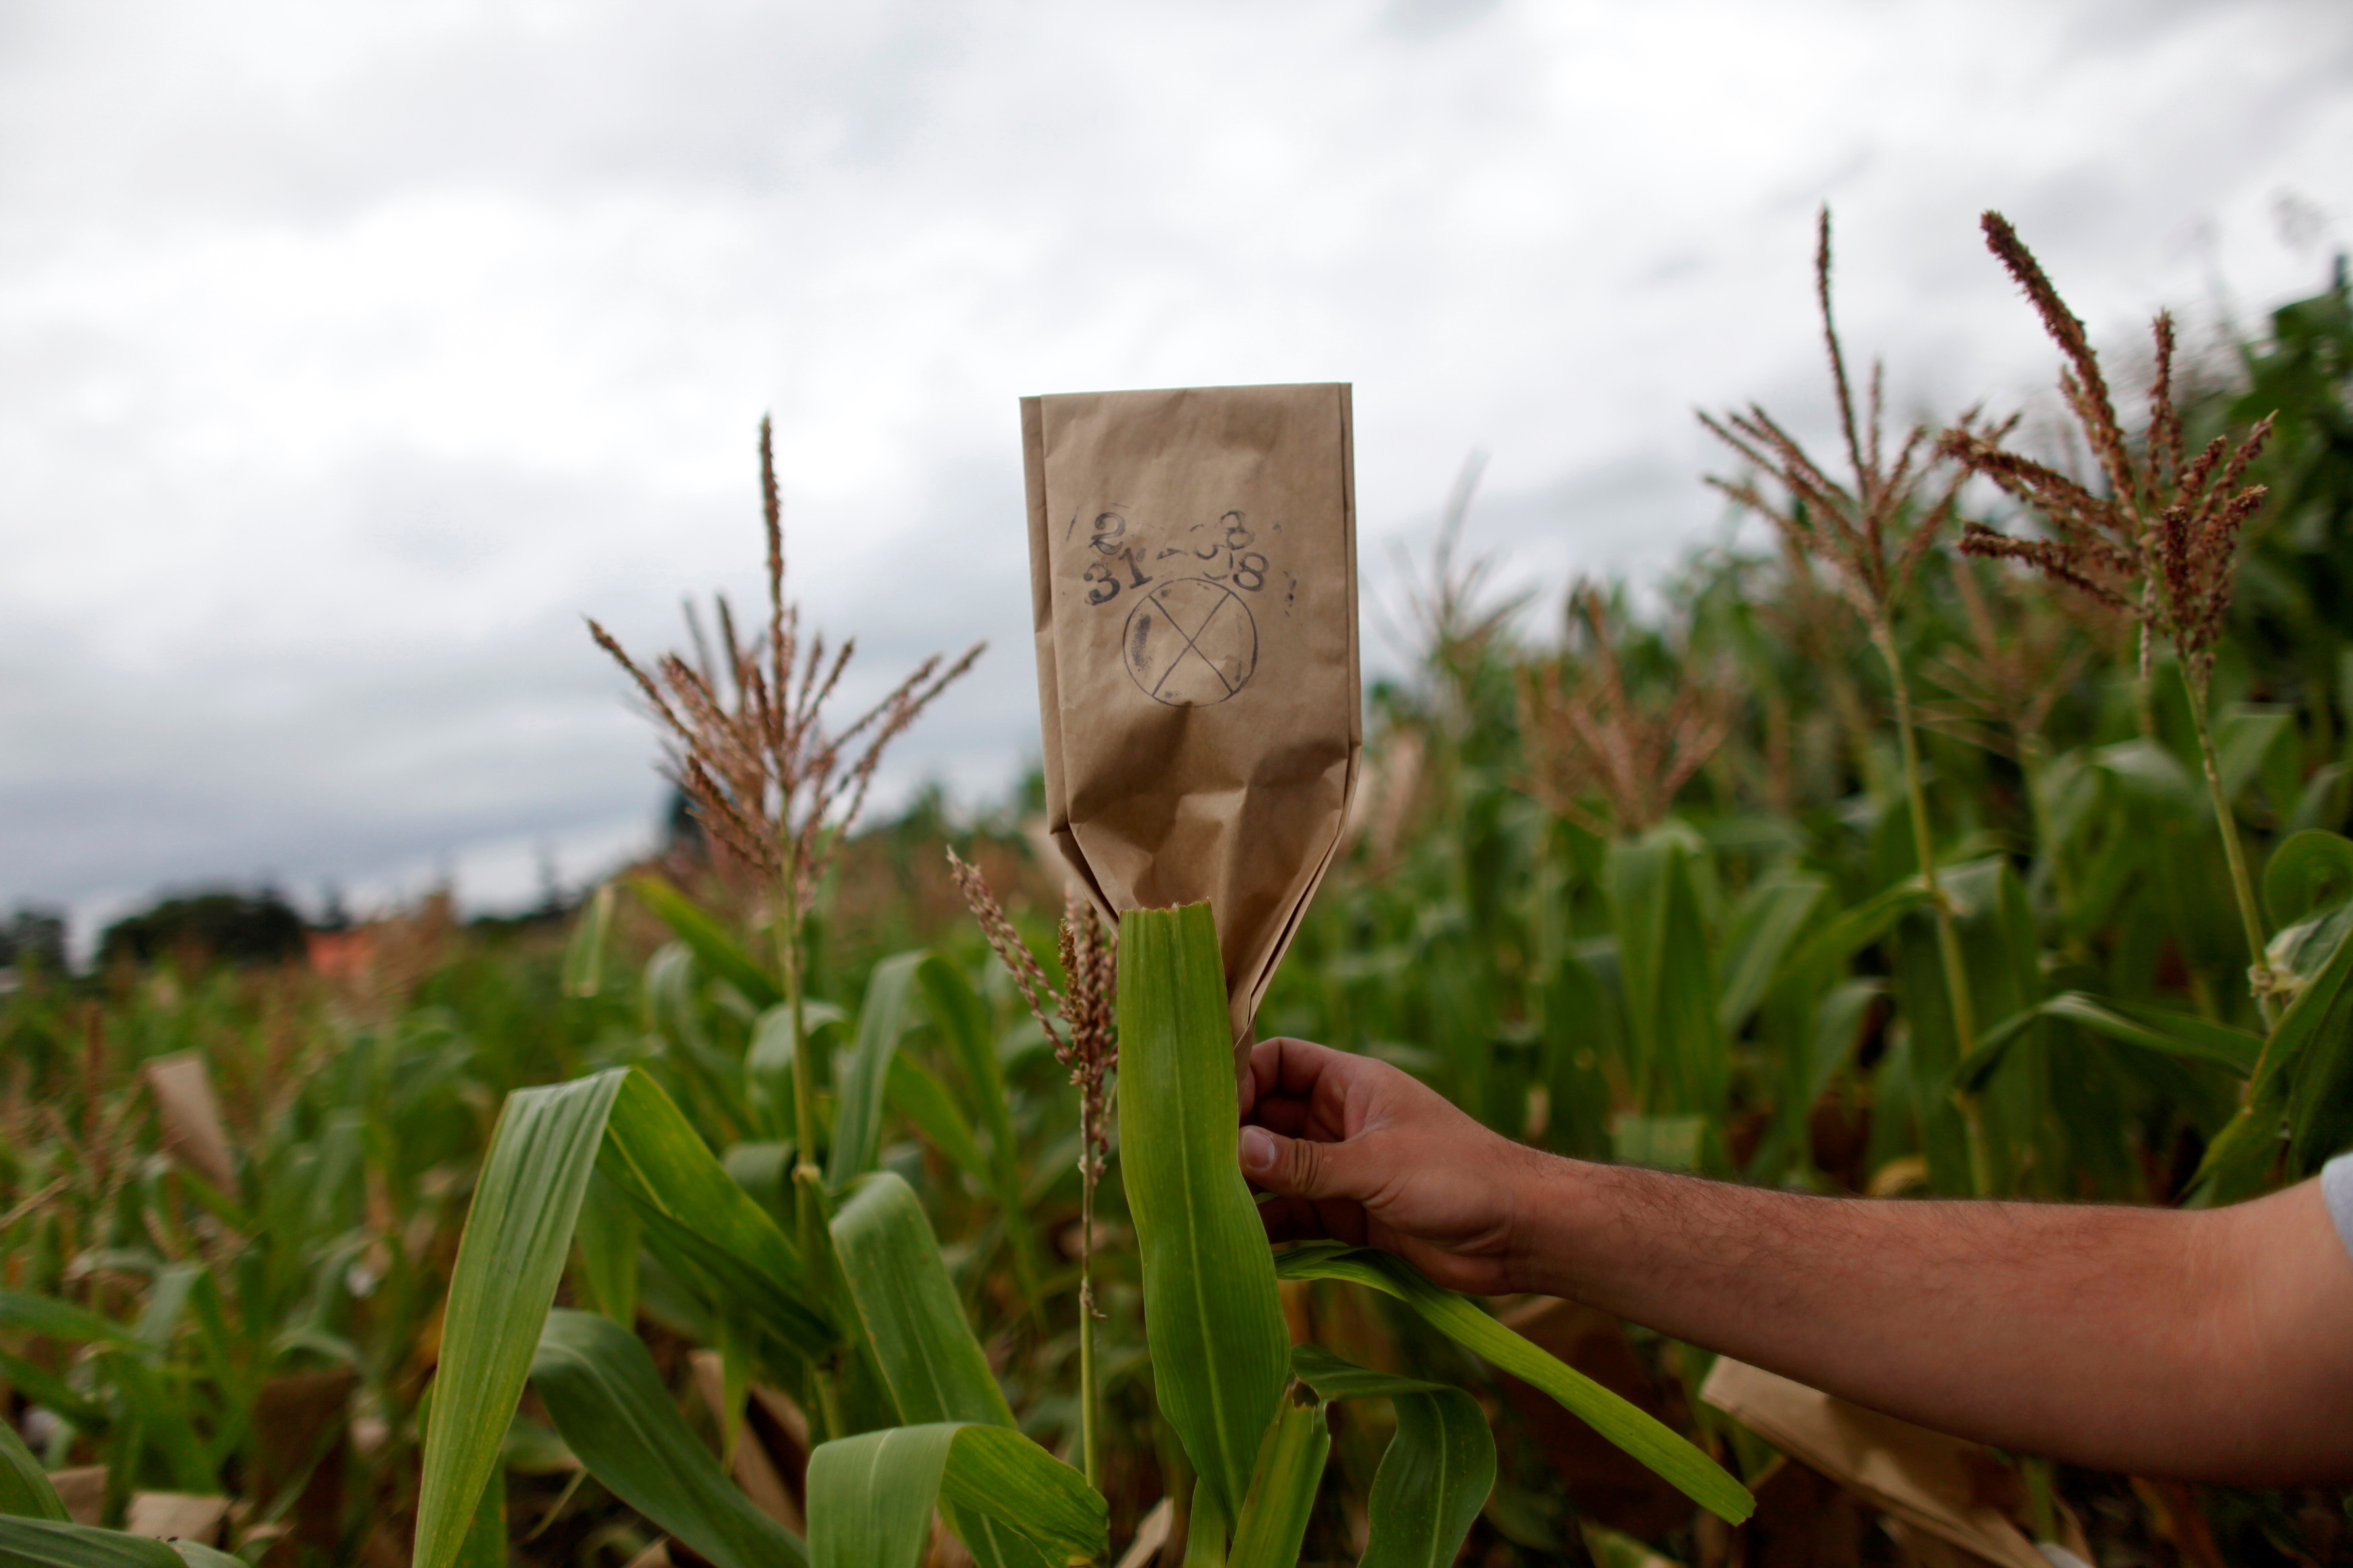 A scientist puts up a mark in a maize field at the International Maize and Wheat Improvement Center (CIMMYT) in El Batan on the outskirts of Mexico City August 31, 2010. REUTERS/Eliana Aponte/File Photo